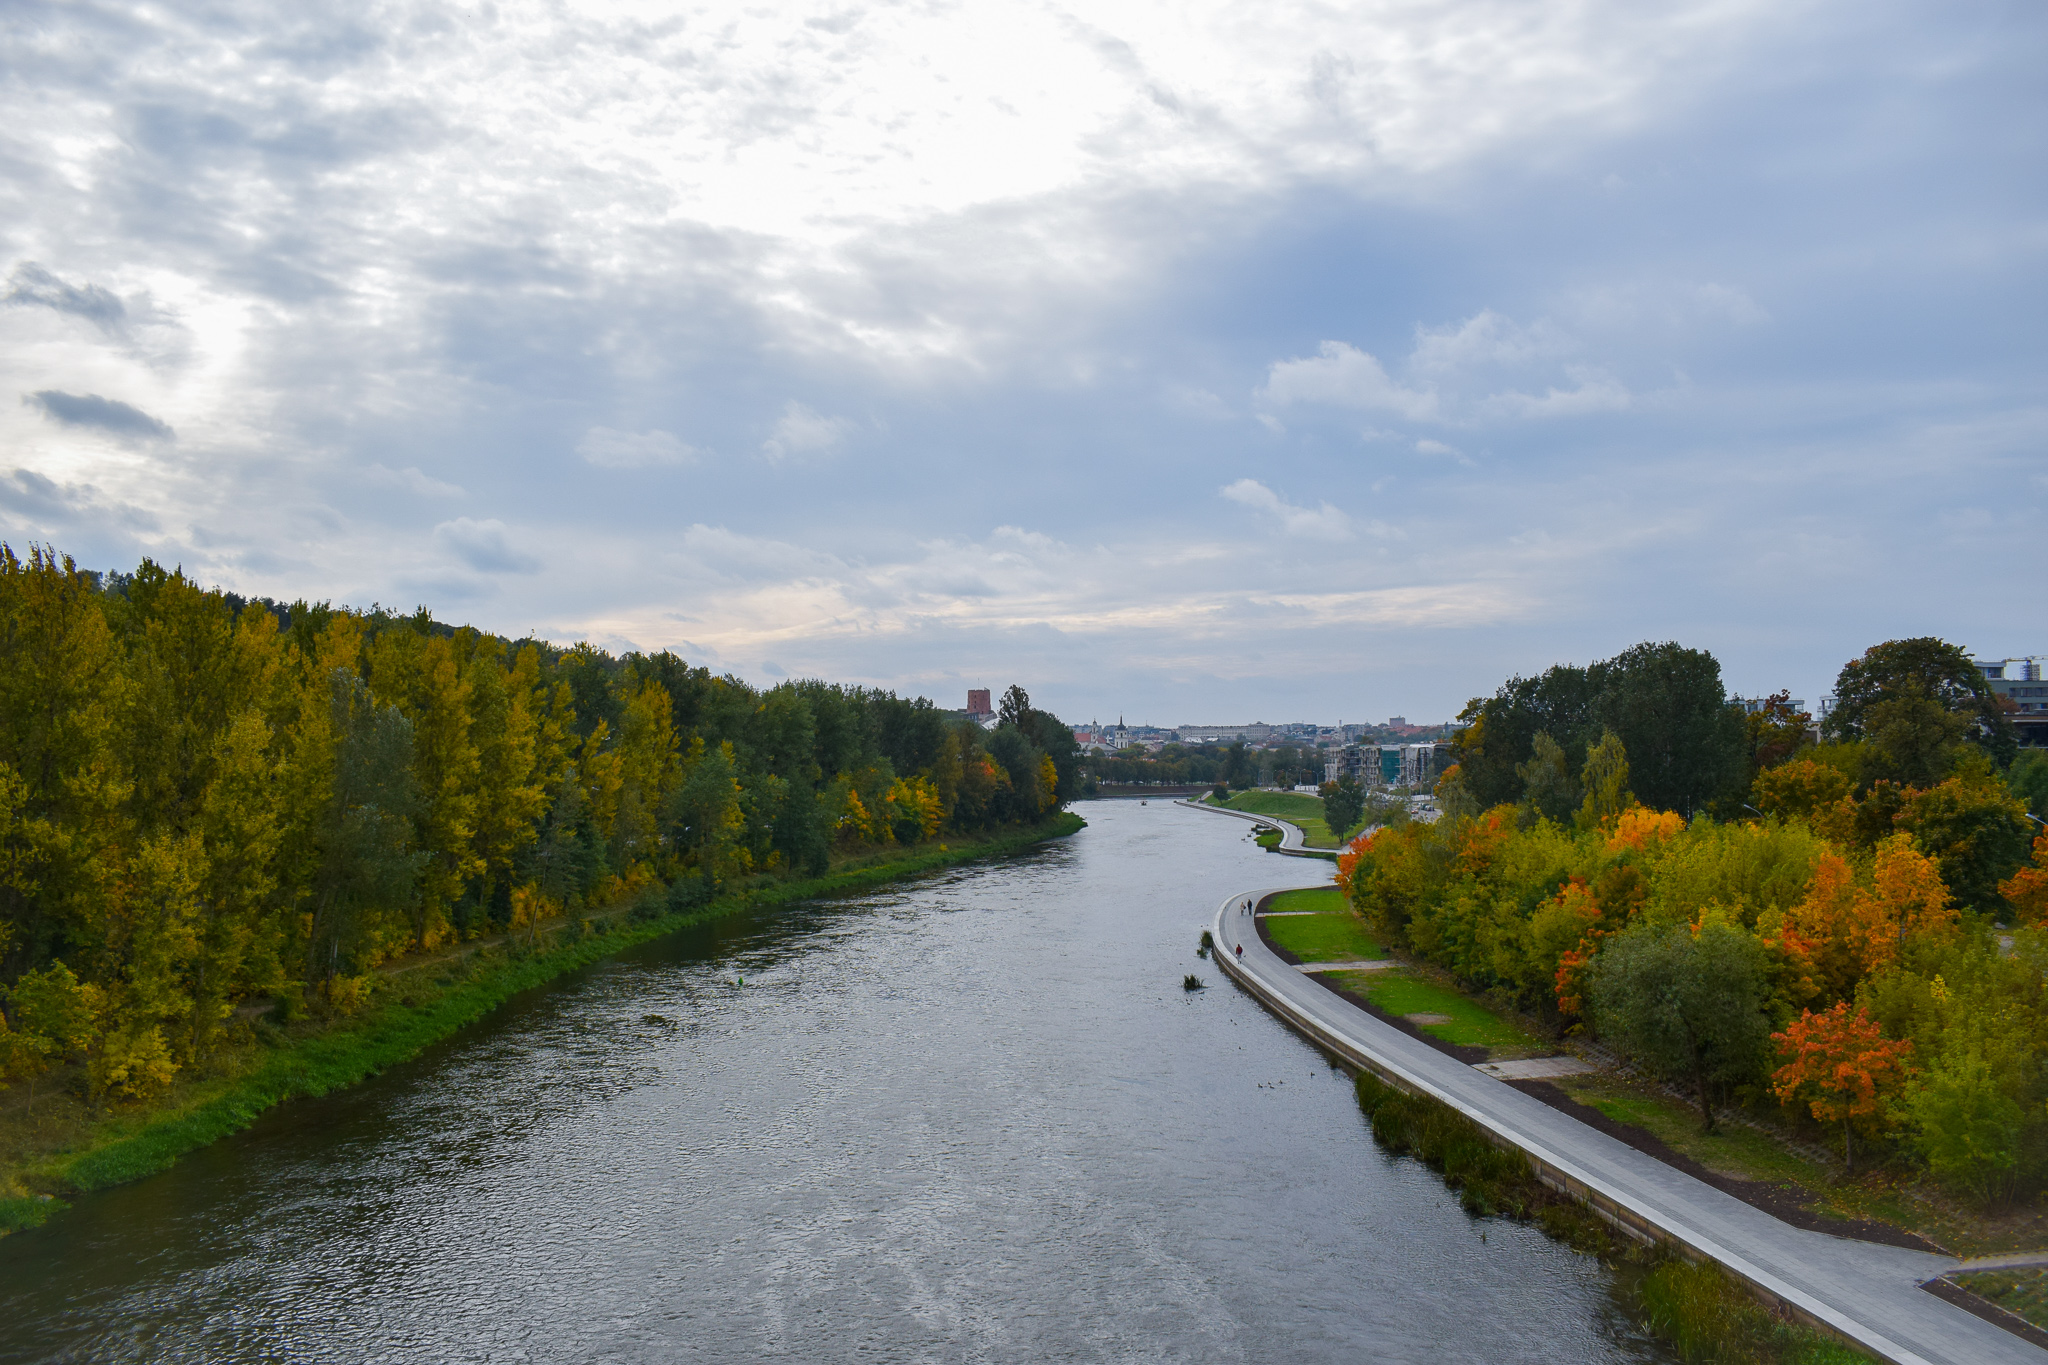 The River Neris runs right through Vilnius.